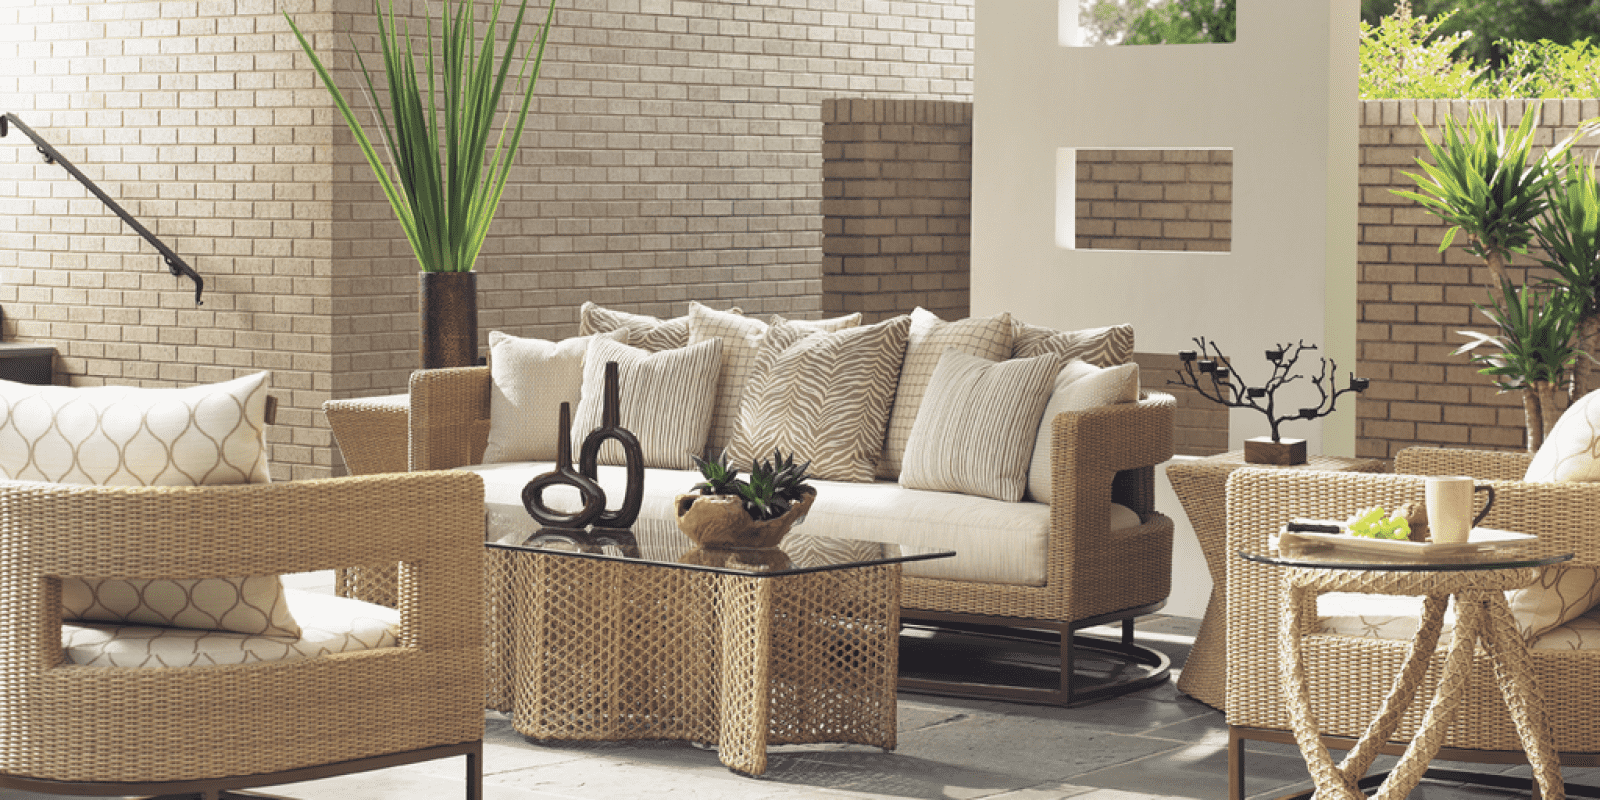 Outdoor Patio Design Specialist | American Casual Living on Porch & Patio Casual Living id=49973